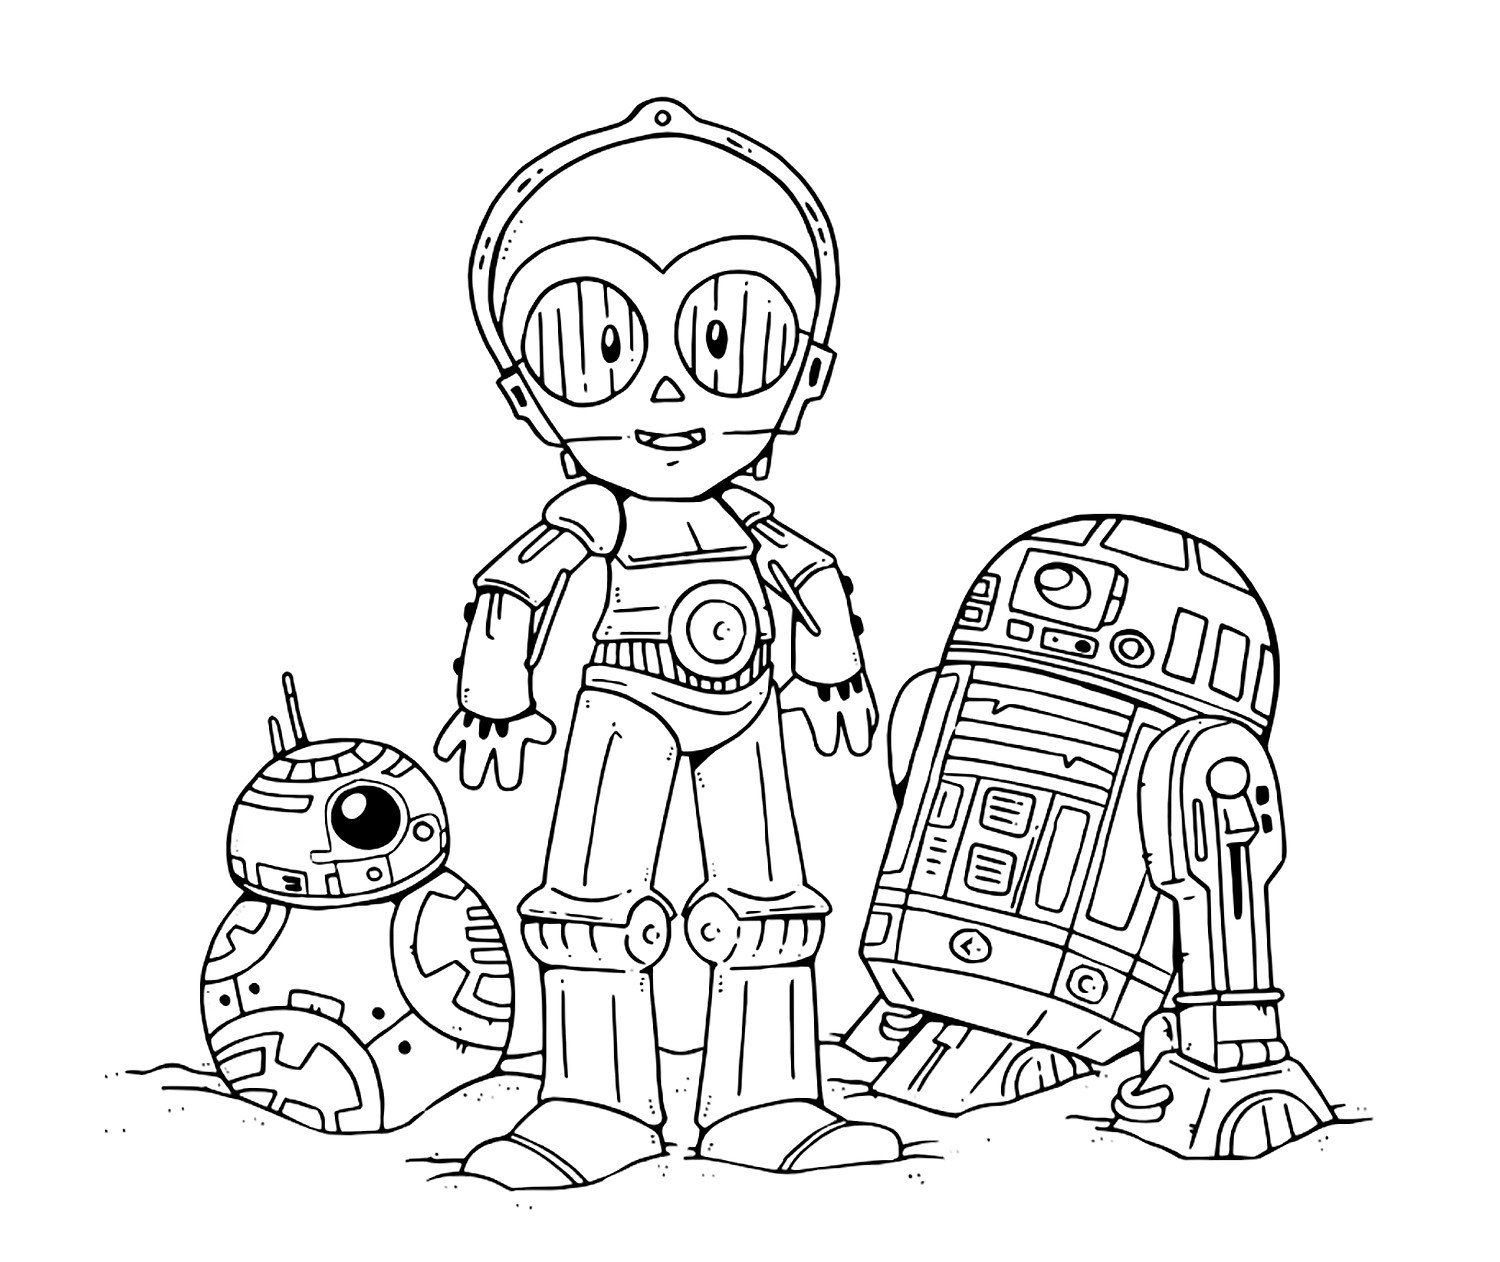 Star Wars Coloring Sheets Luxury Coloring Pages Fabulous Star Wars Coloring Sheets Sheets Star War In 2020 Cute Coloring Pages Star Wars Coloring Book Star Wars Colors